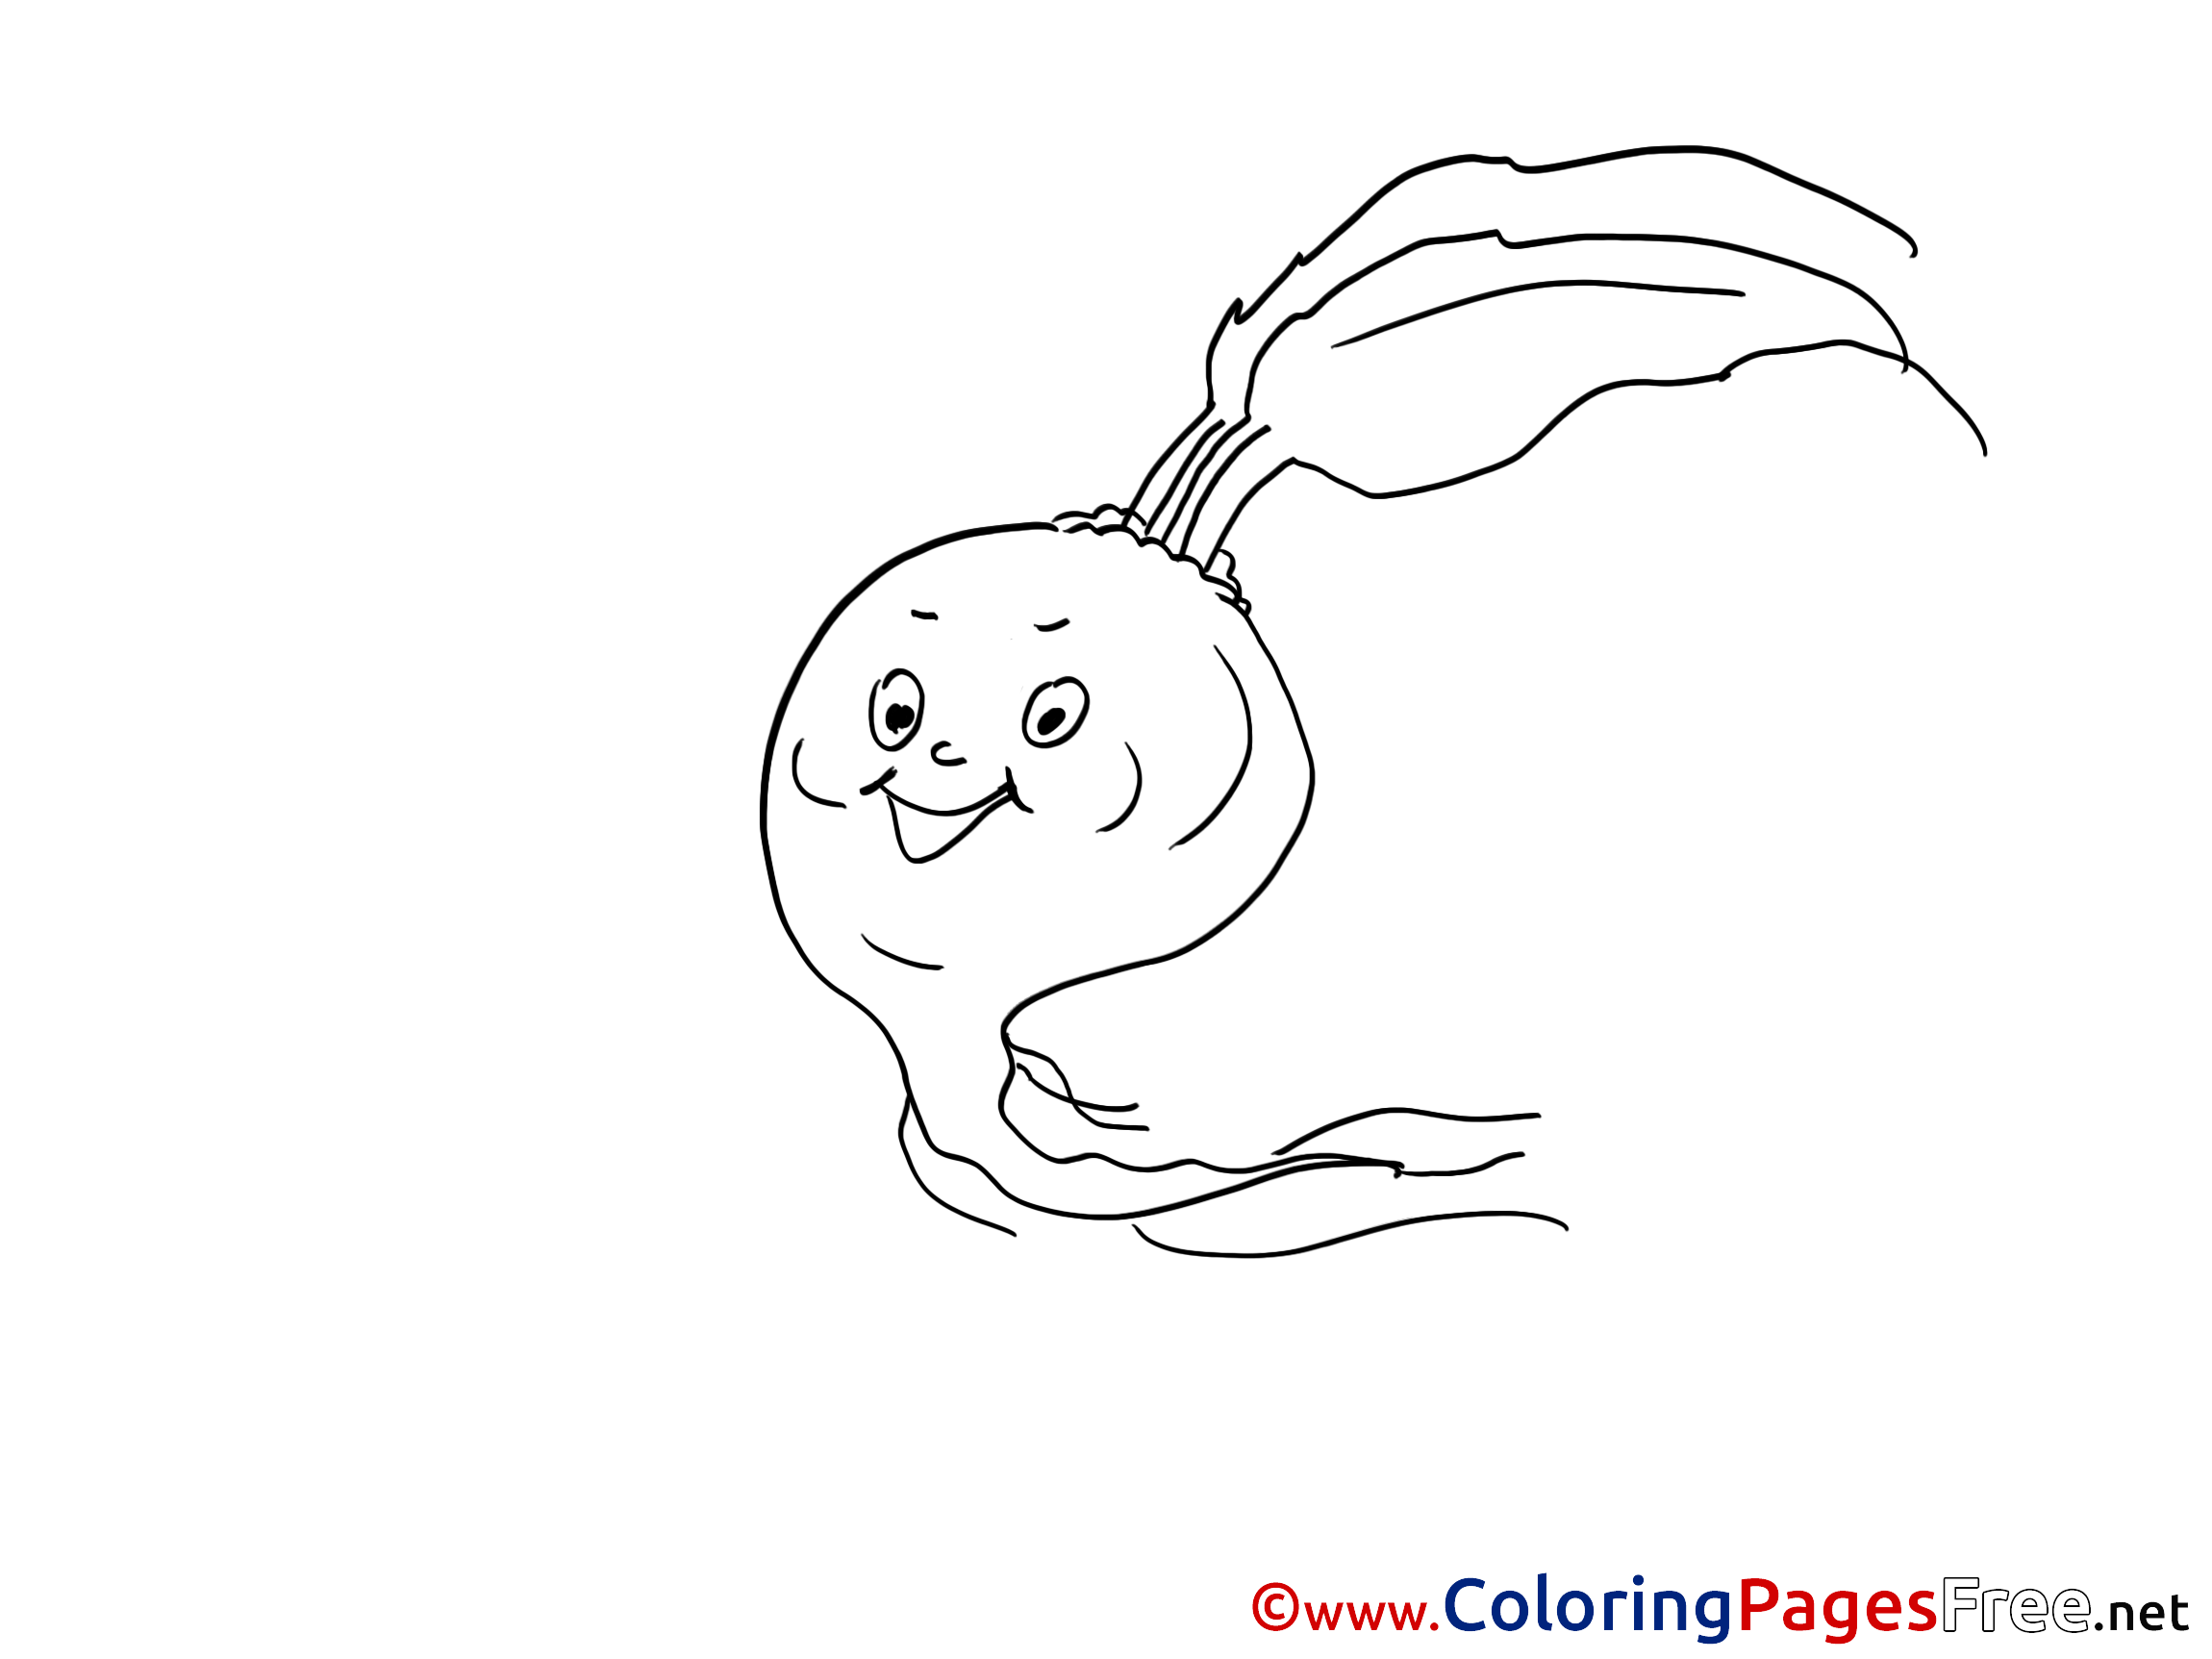 Radish 4 coloring page | Free Printable Coloring Pages | 1725x2300